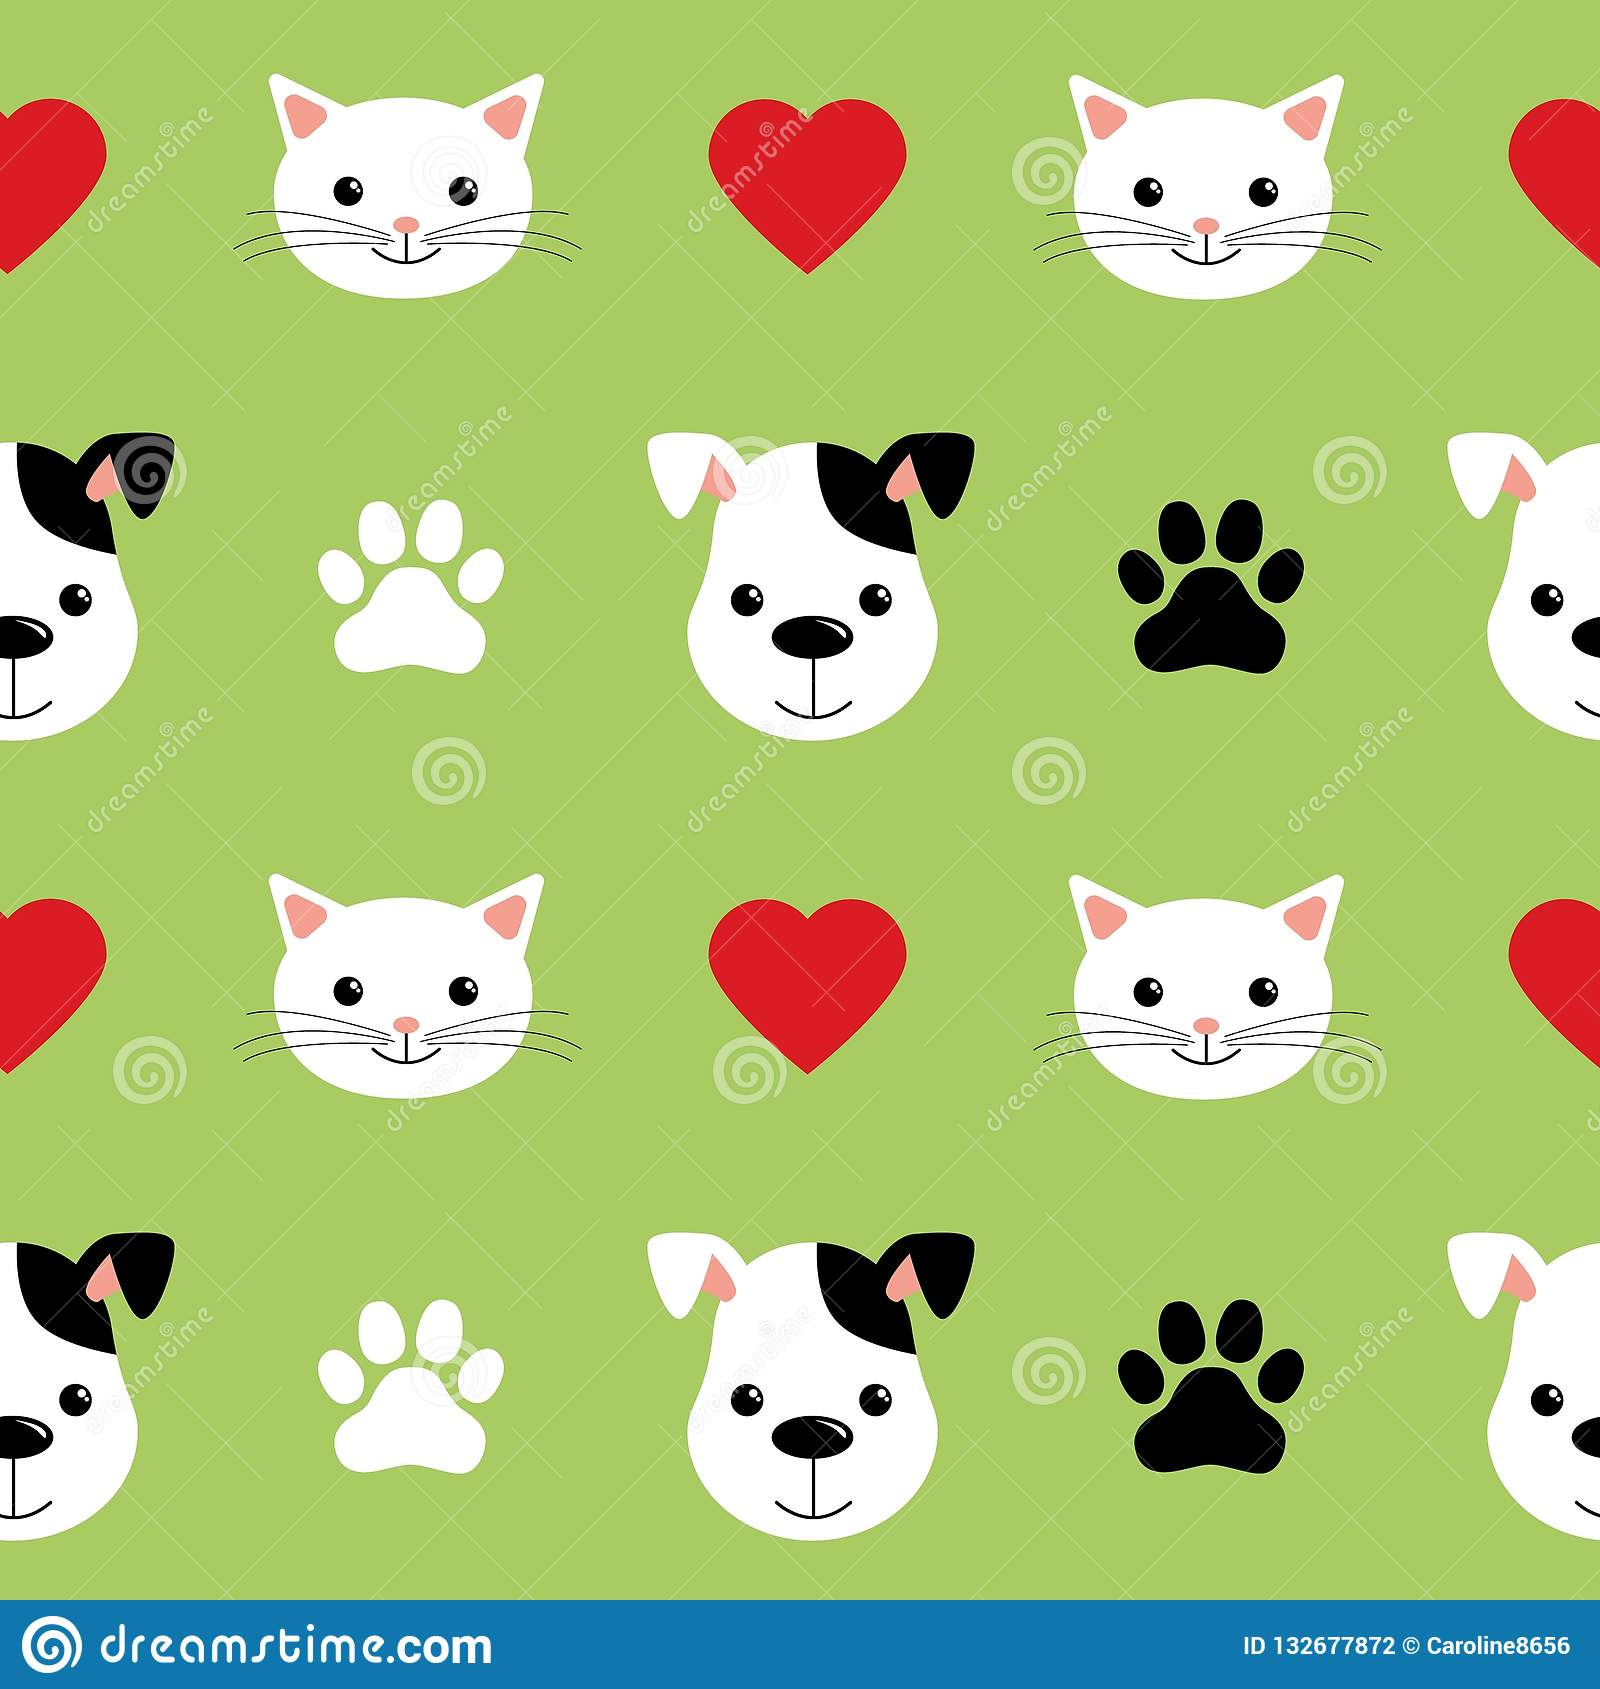 Cartoon Cute Cats And Dogs Vector Seamless Pattern Good For Background Wallpaper Cover Textile And Card For Children Stock Vector Illustration Of Kitten Card 132677872